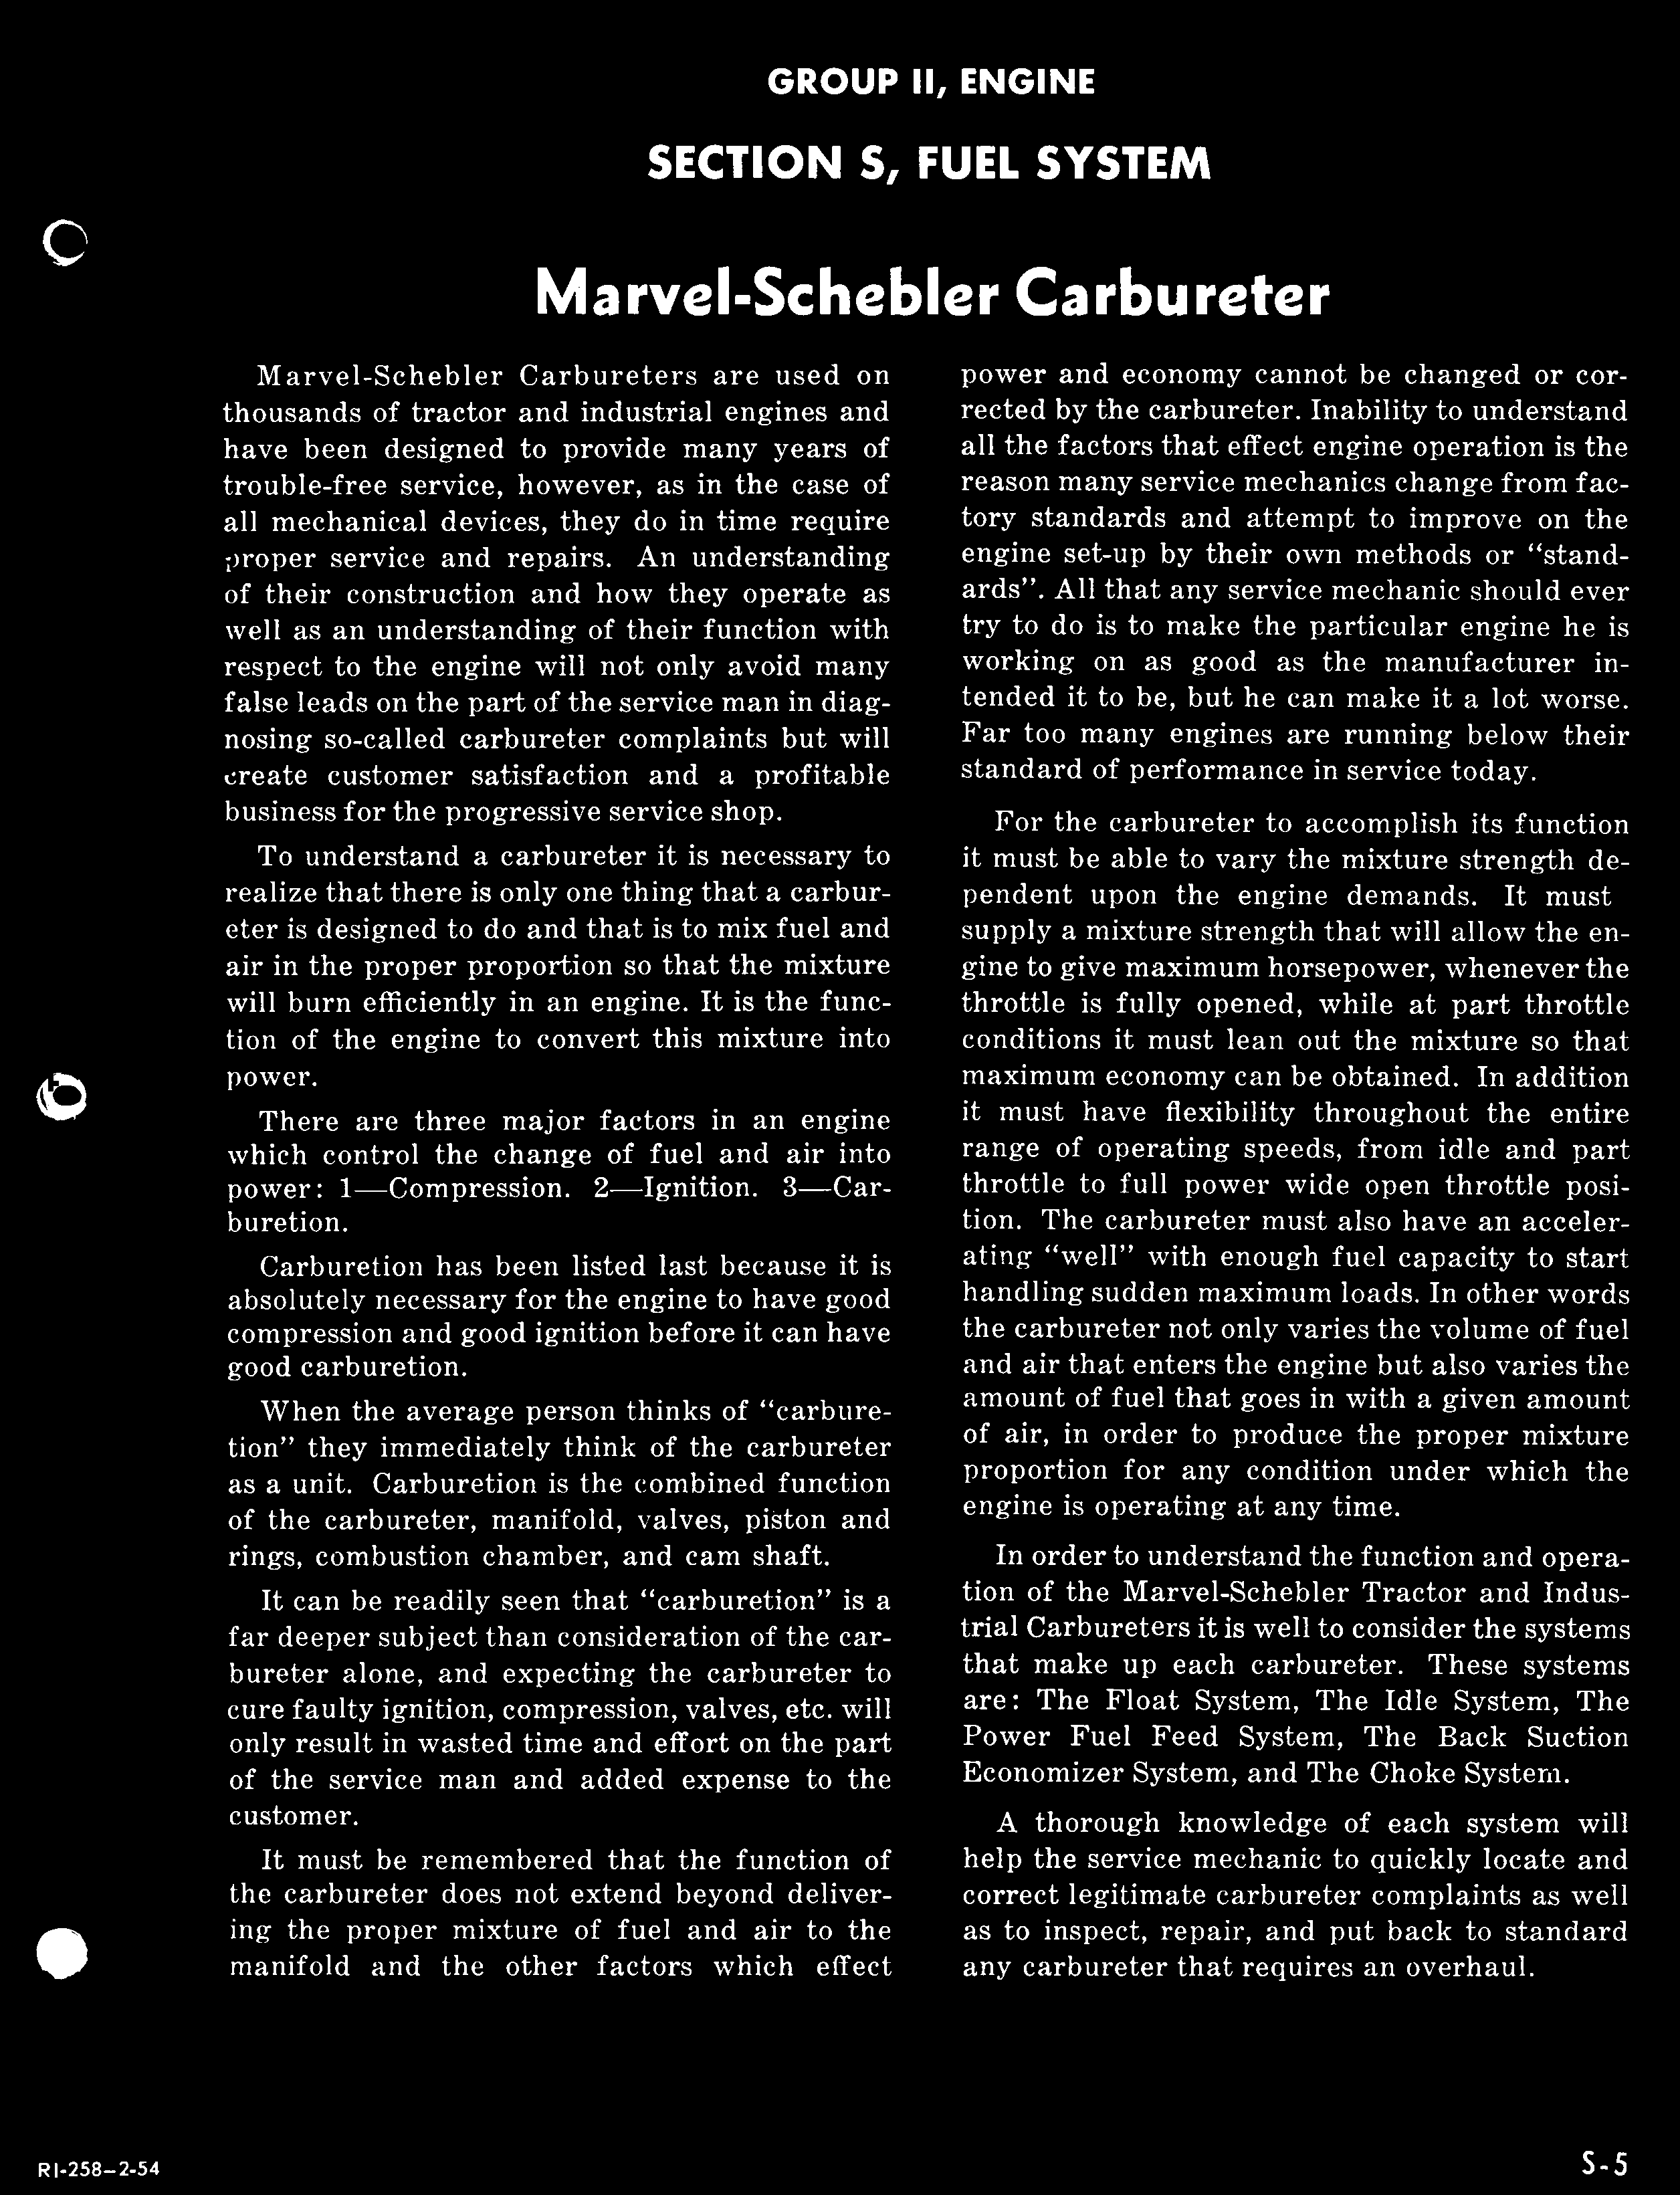 Marvel-Schebler Carbureter - PDF